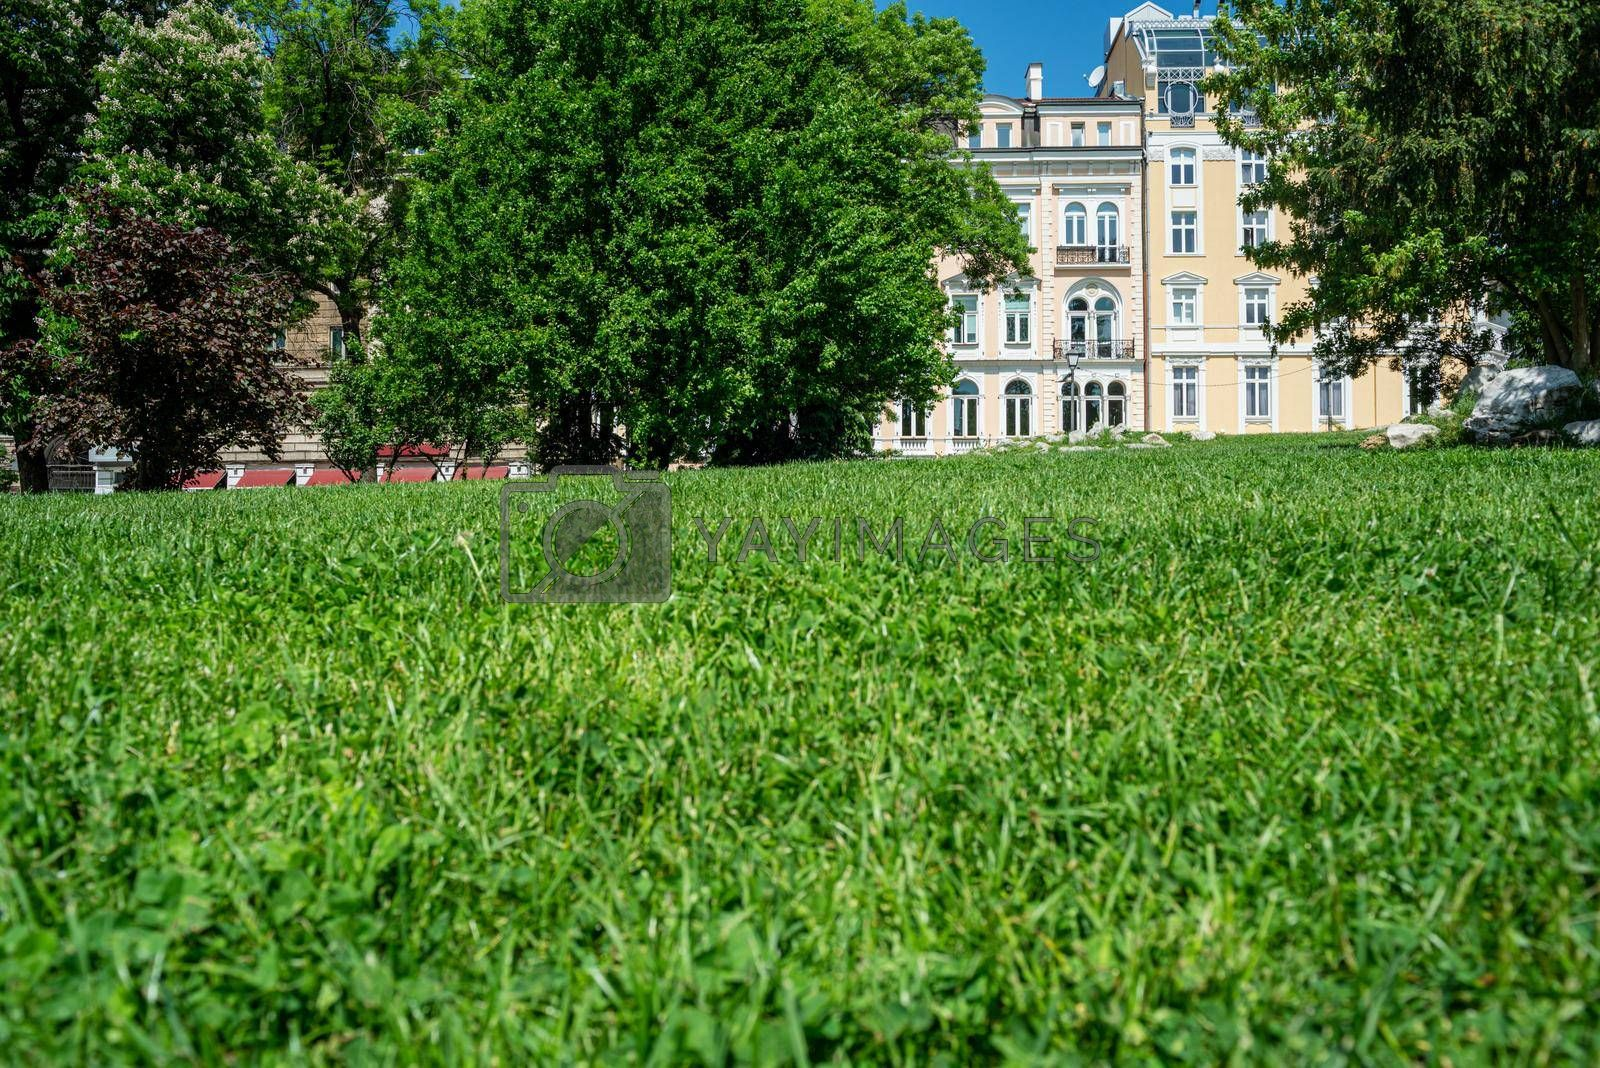 Royalty free image of Grass Green Clovers Park Urban Europe Bulgaria Sunny Day by vilevi